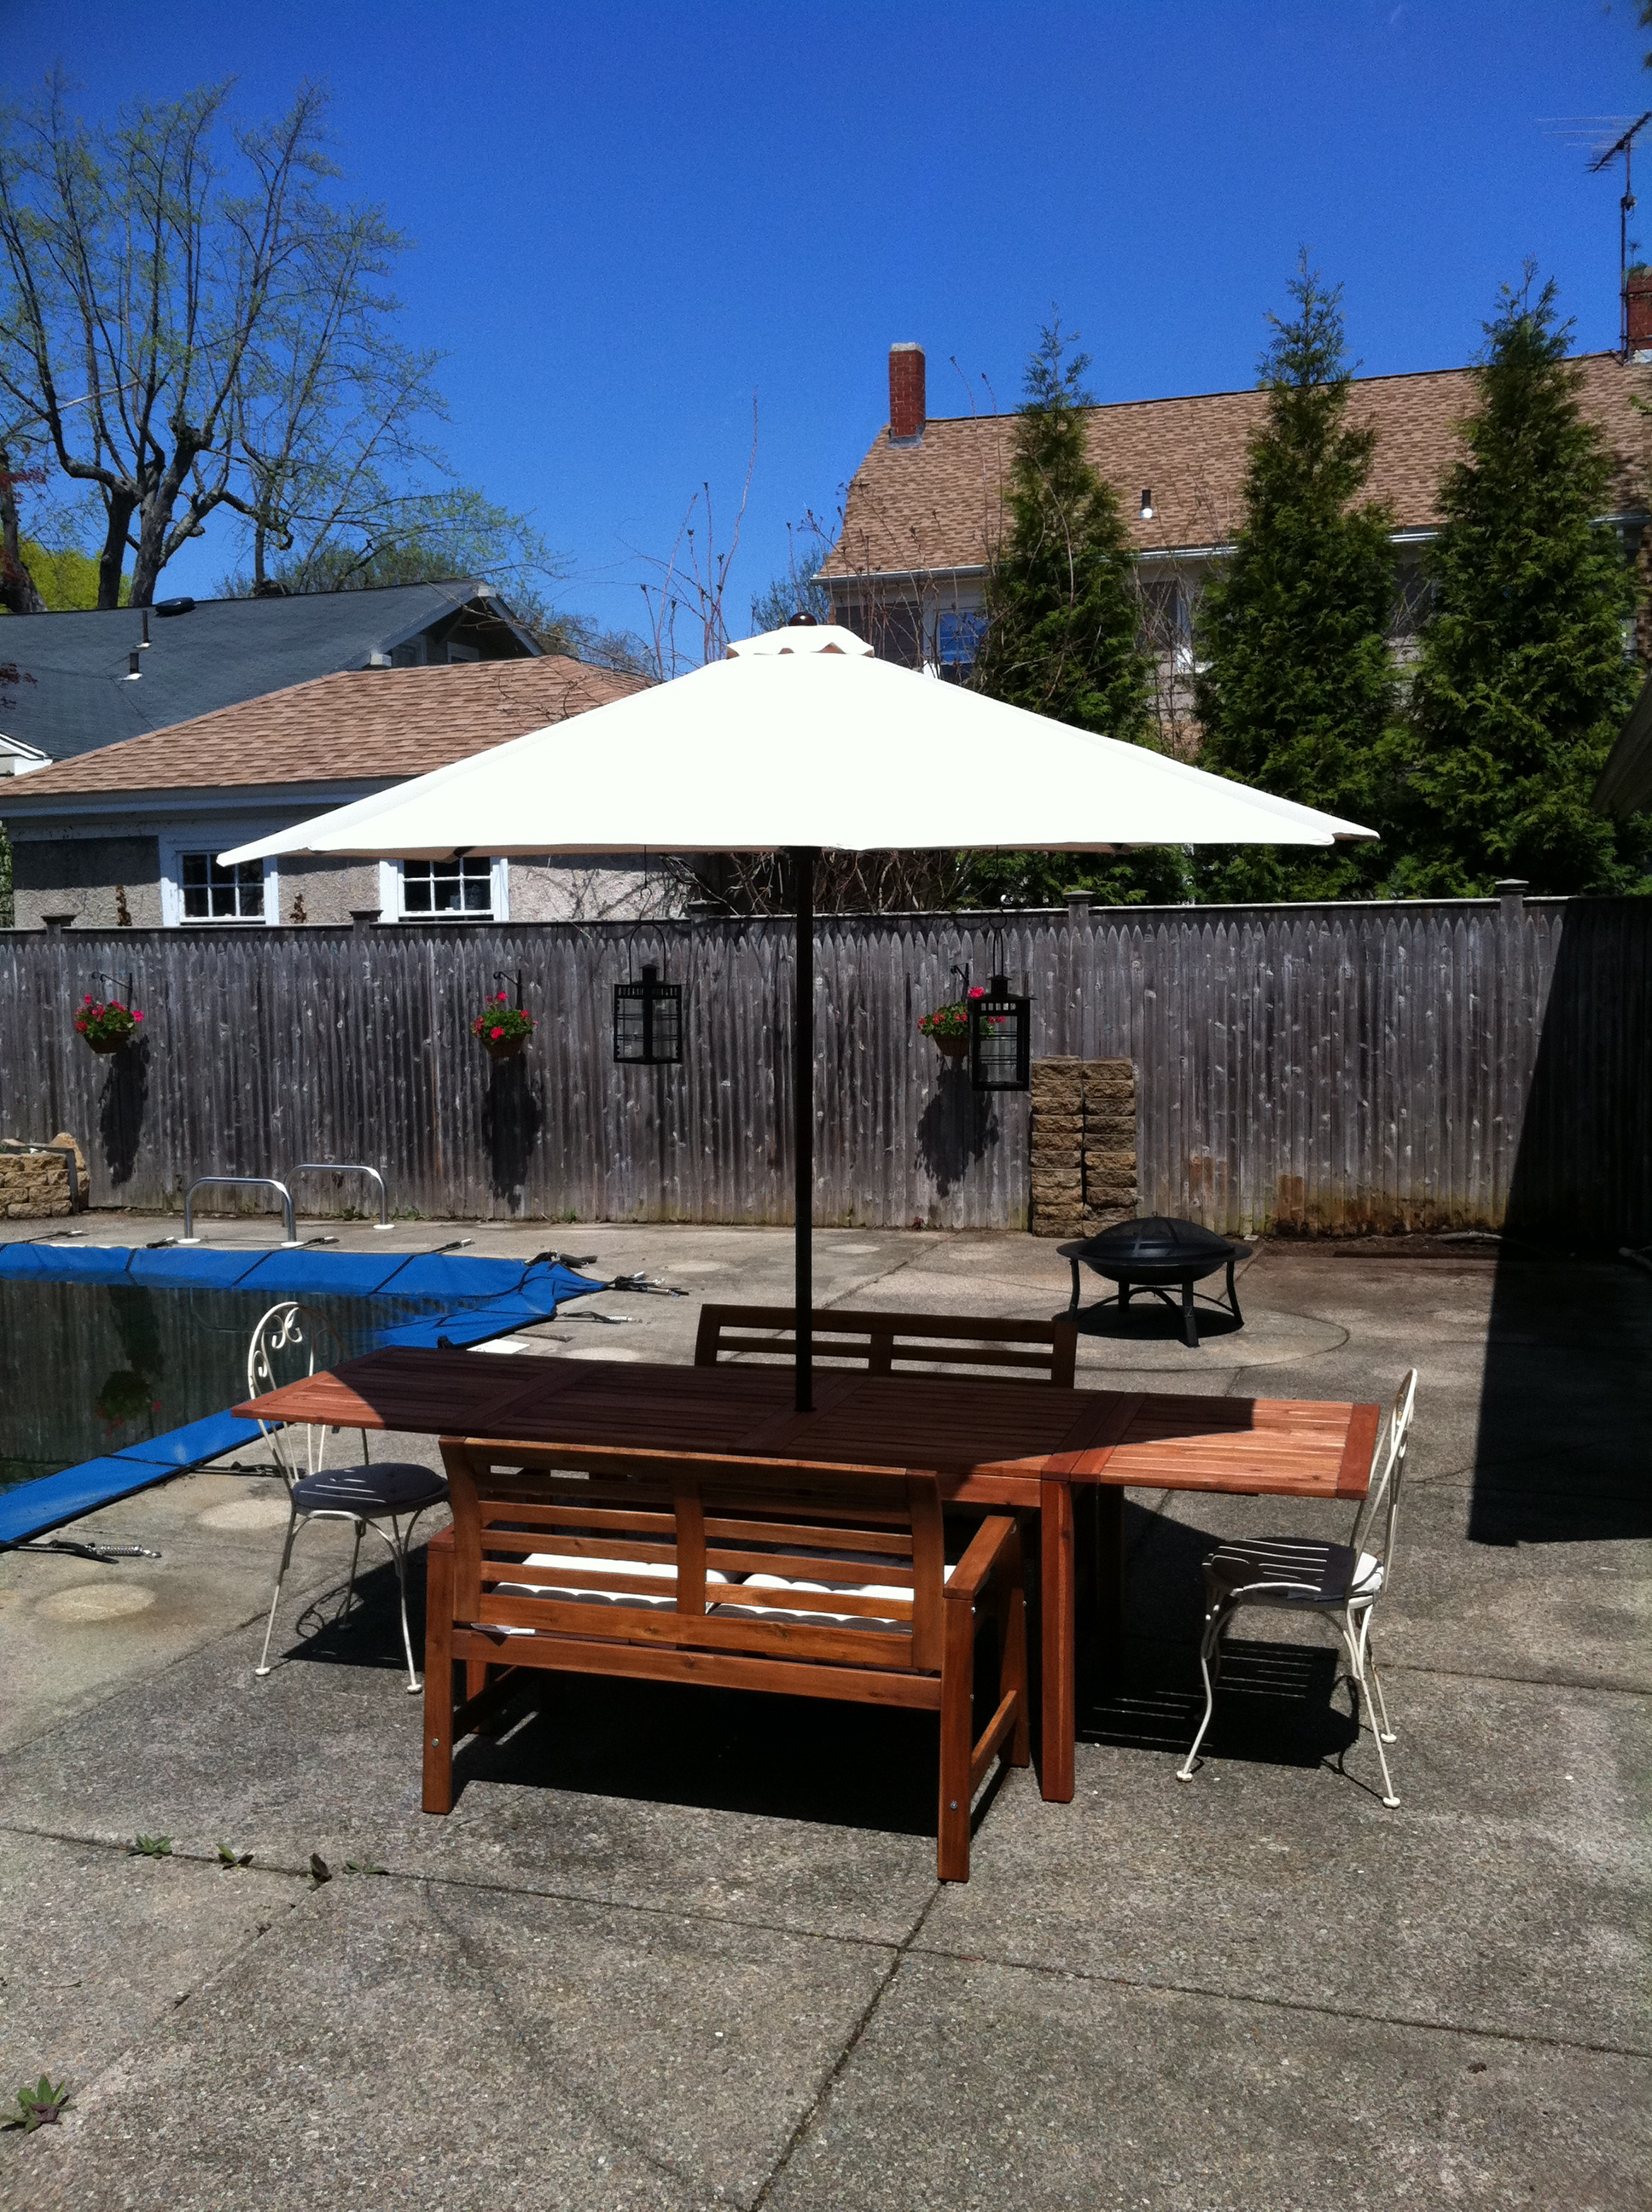 Summer One, after the purchase of the house, in which the entire back yard contained concrete, even the pool coping.